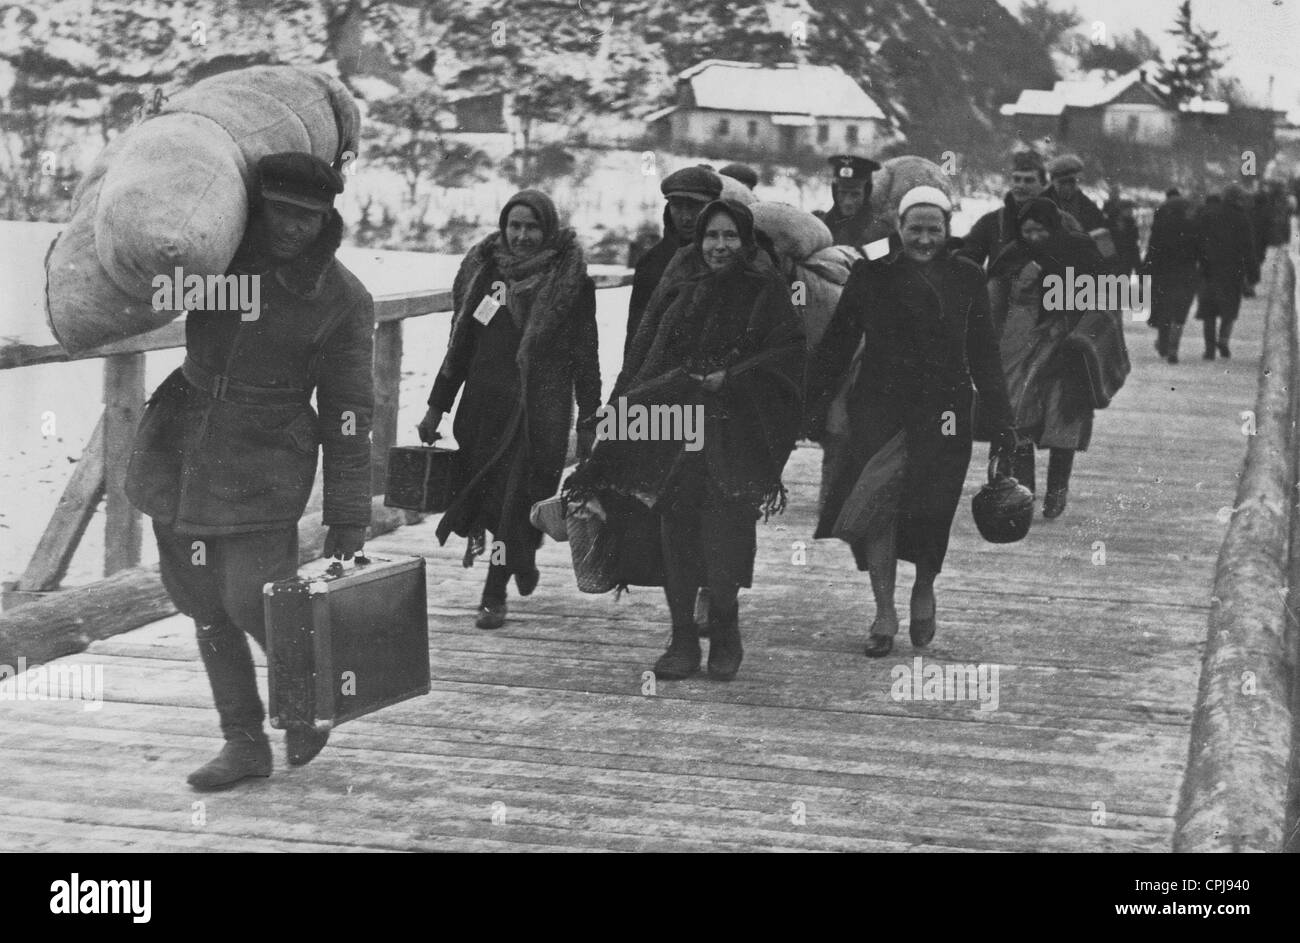 Ethnic Germans from Eastern Poland, 1940 - Stock Image